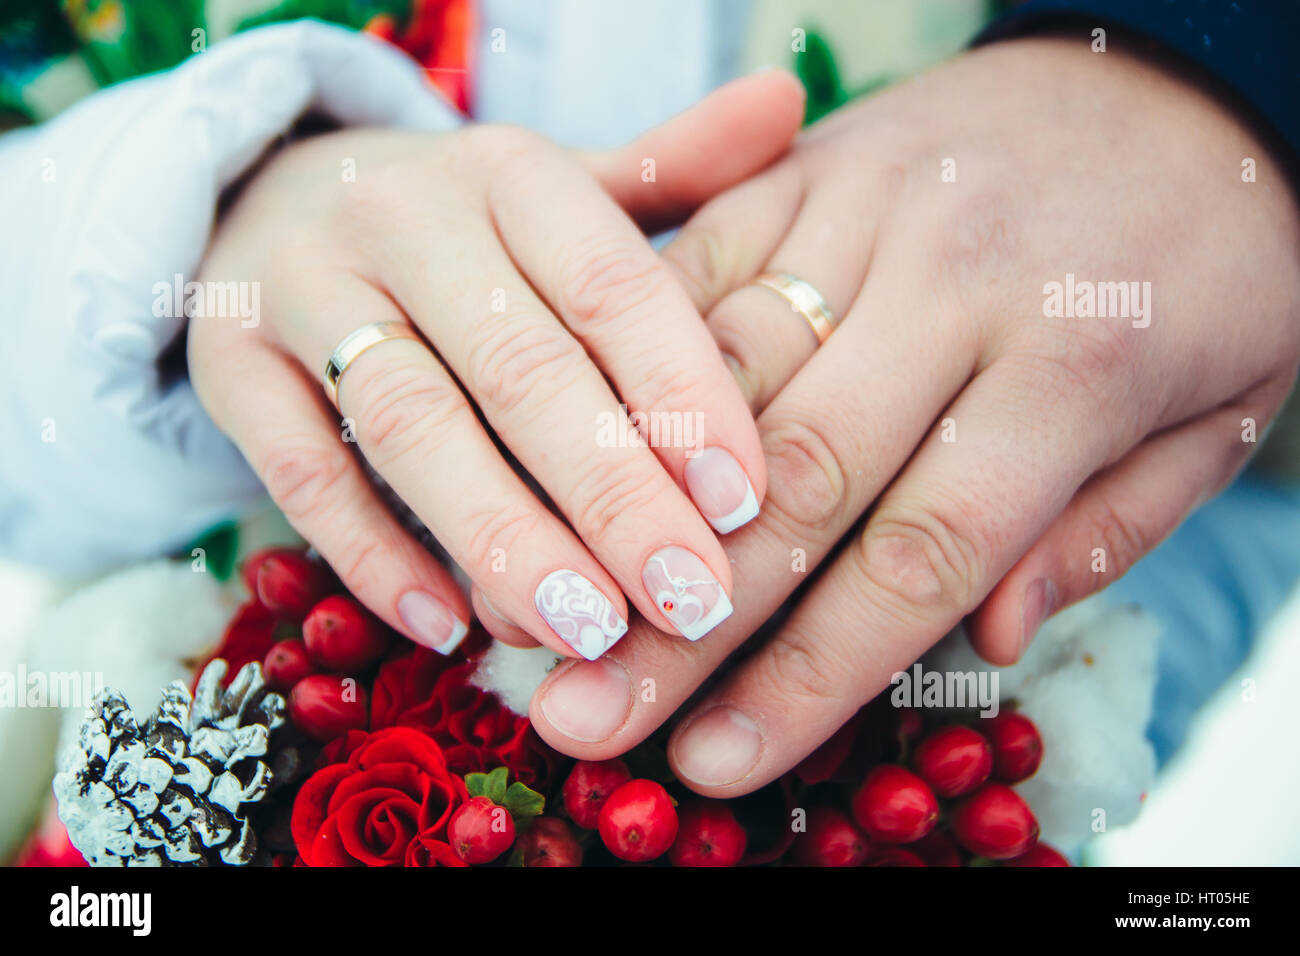 Bridal hands with rings on a bouquet of berries and cones with shallow depth of field - Stock Image